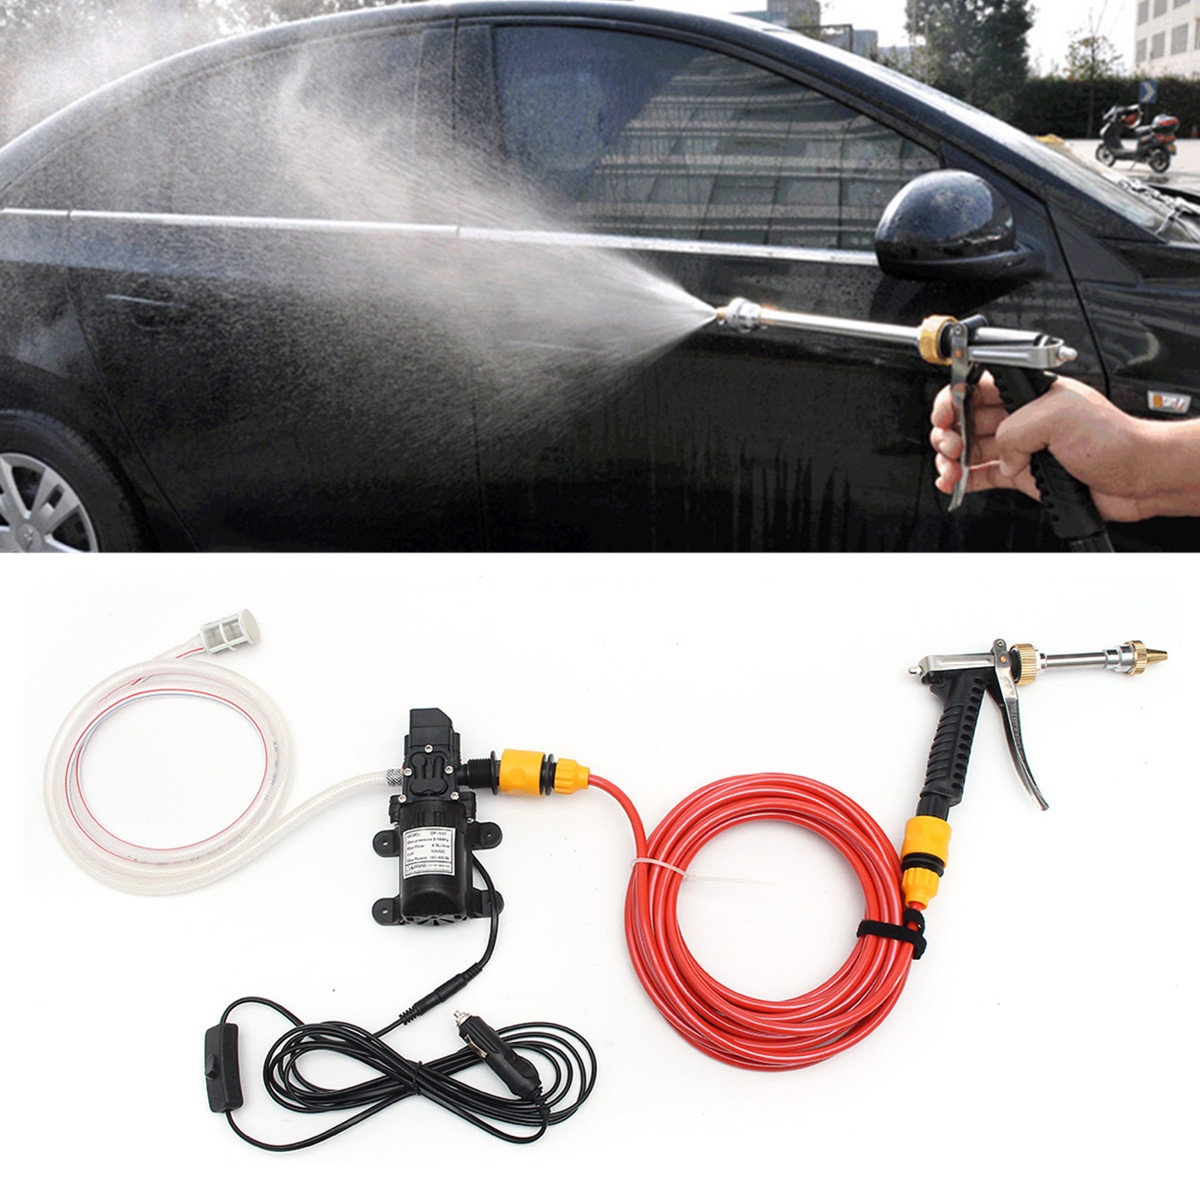 12v 60w Electric Car Wash Pump Water Cleaner Washer